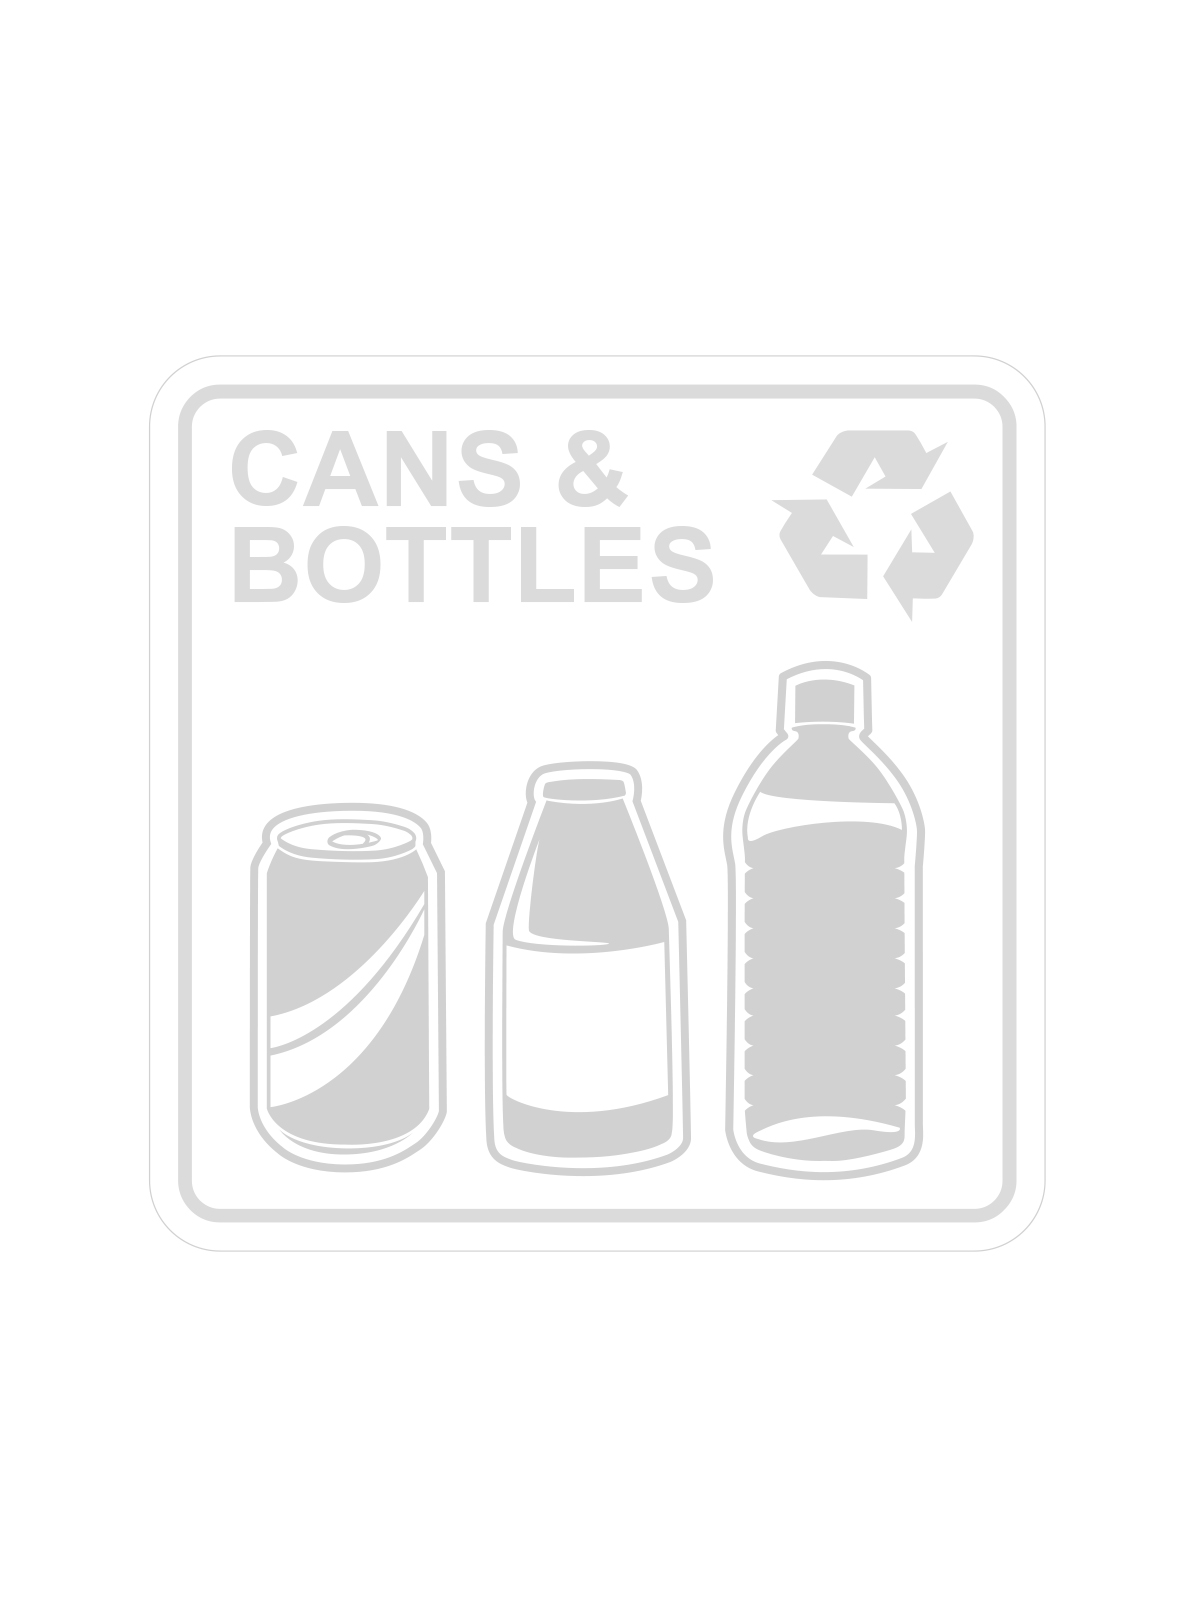 SQUARE LABEL - CANS & BOTTLES ONLY - CLEAR | WHITE - CANS & BOTTLES ONLY